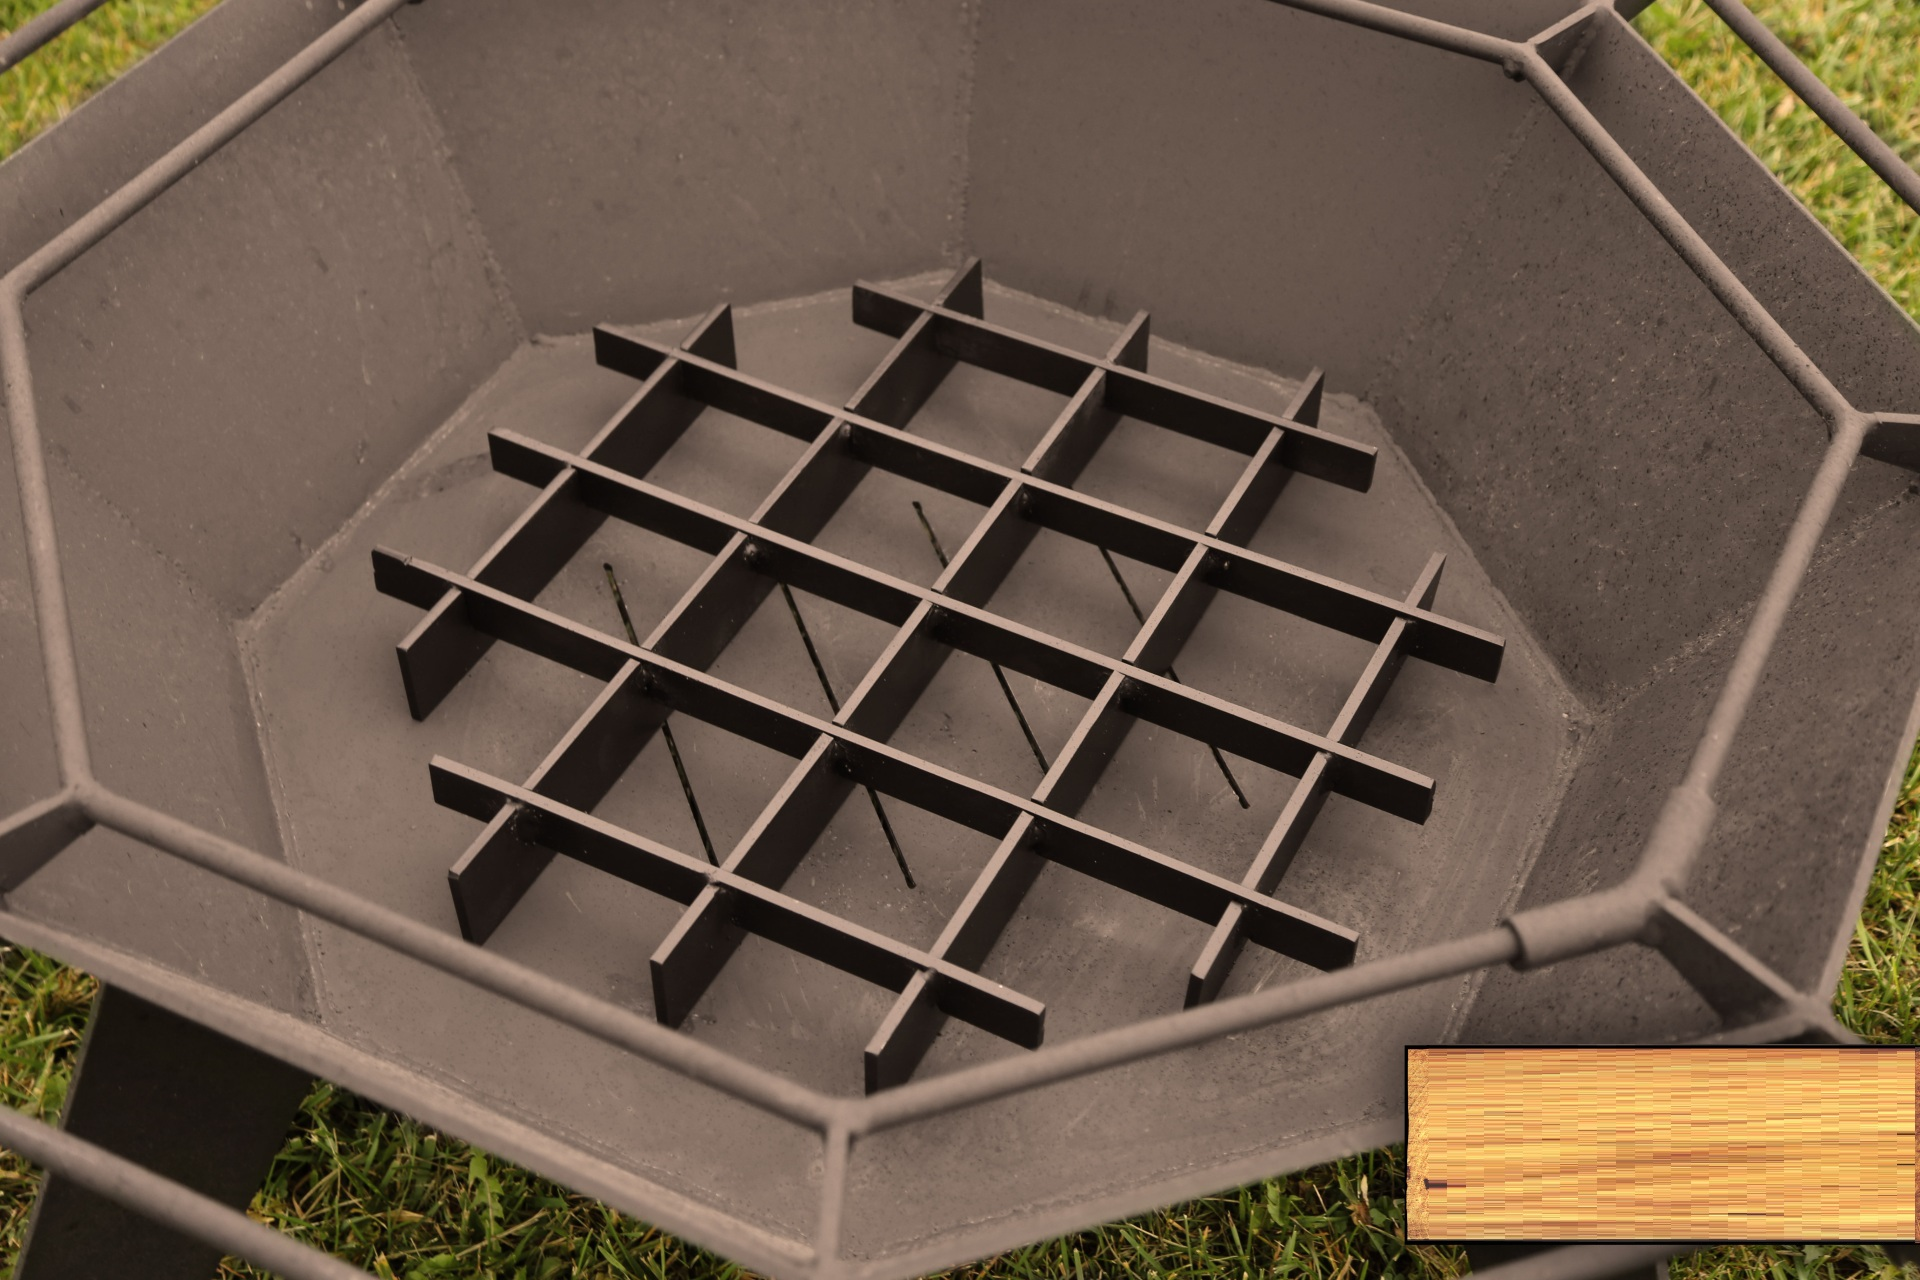 octagonal fire grate in a fire pit outside in the backyard